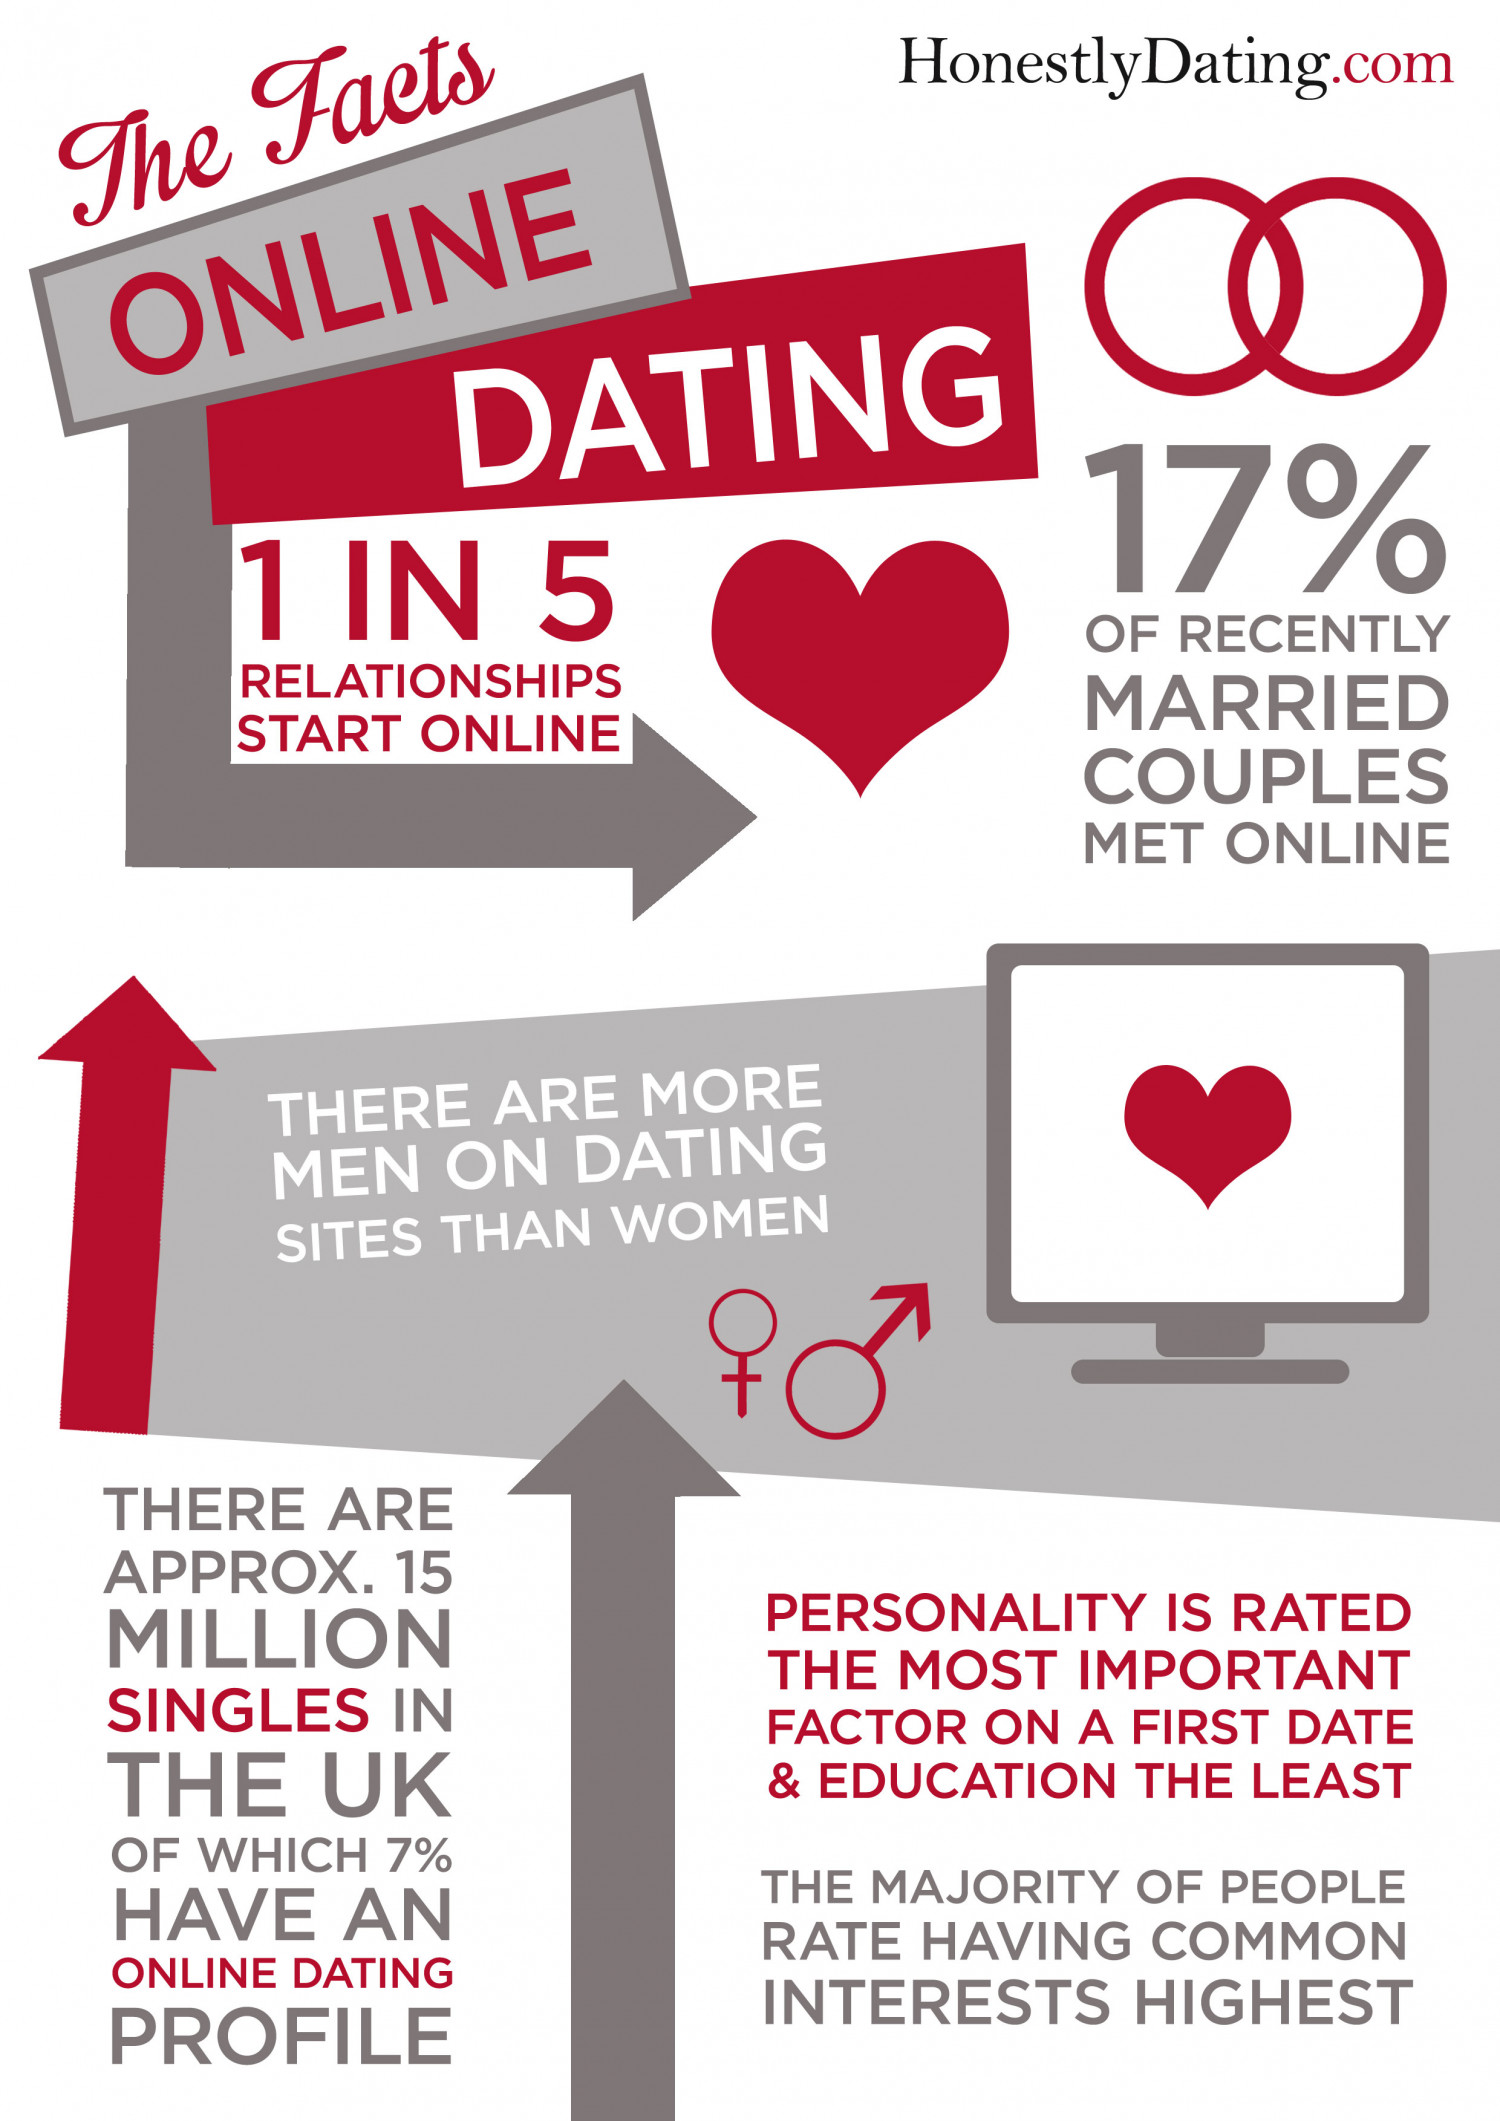 Information on online dating sites